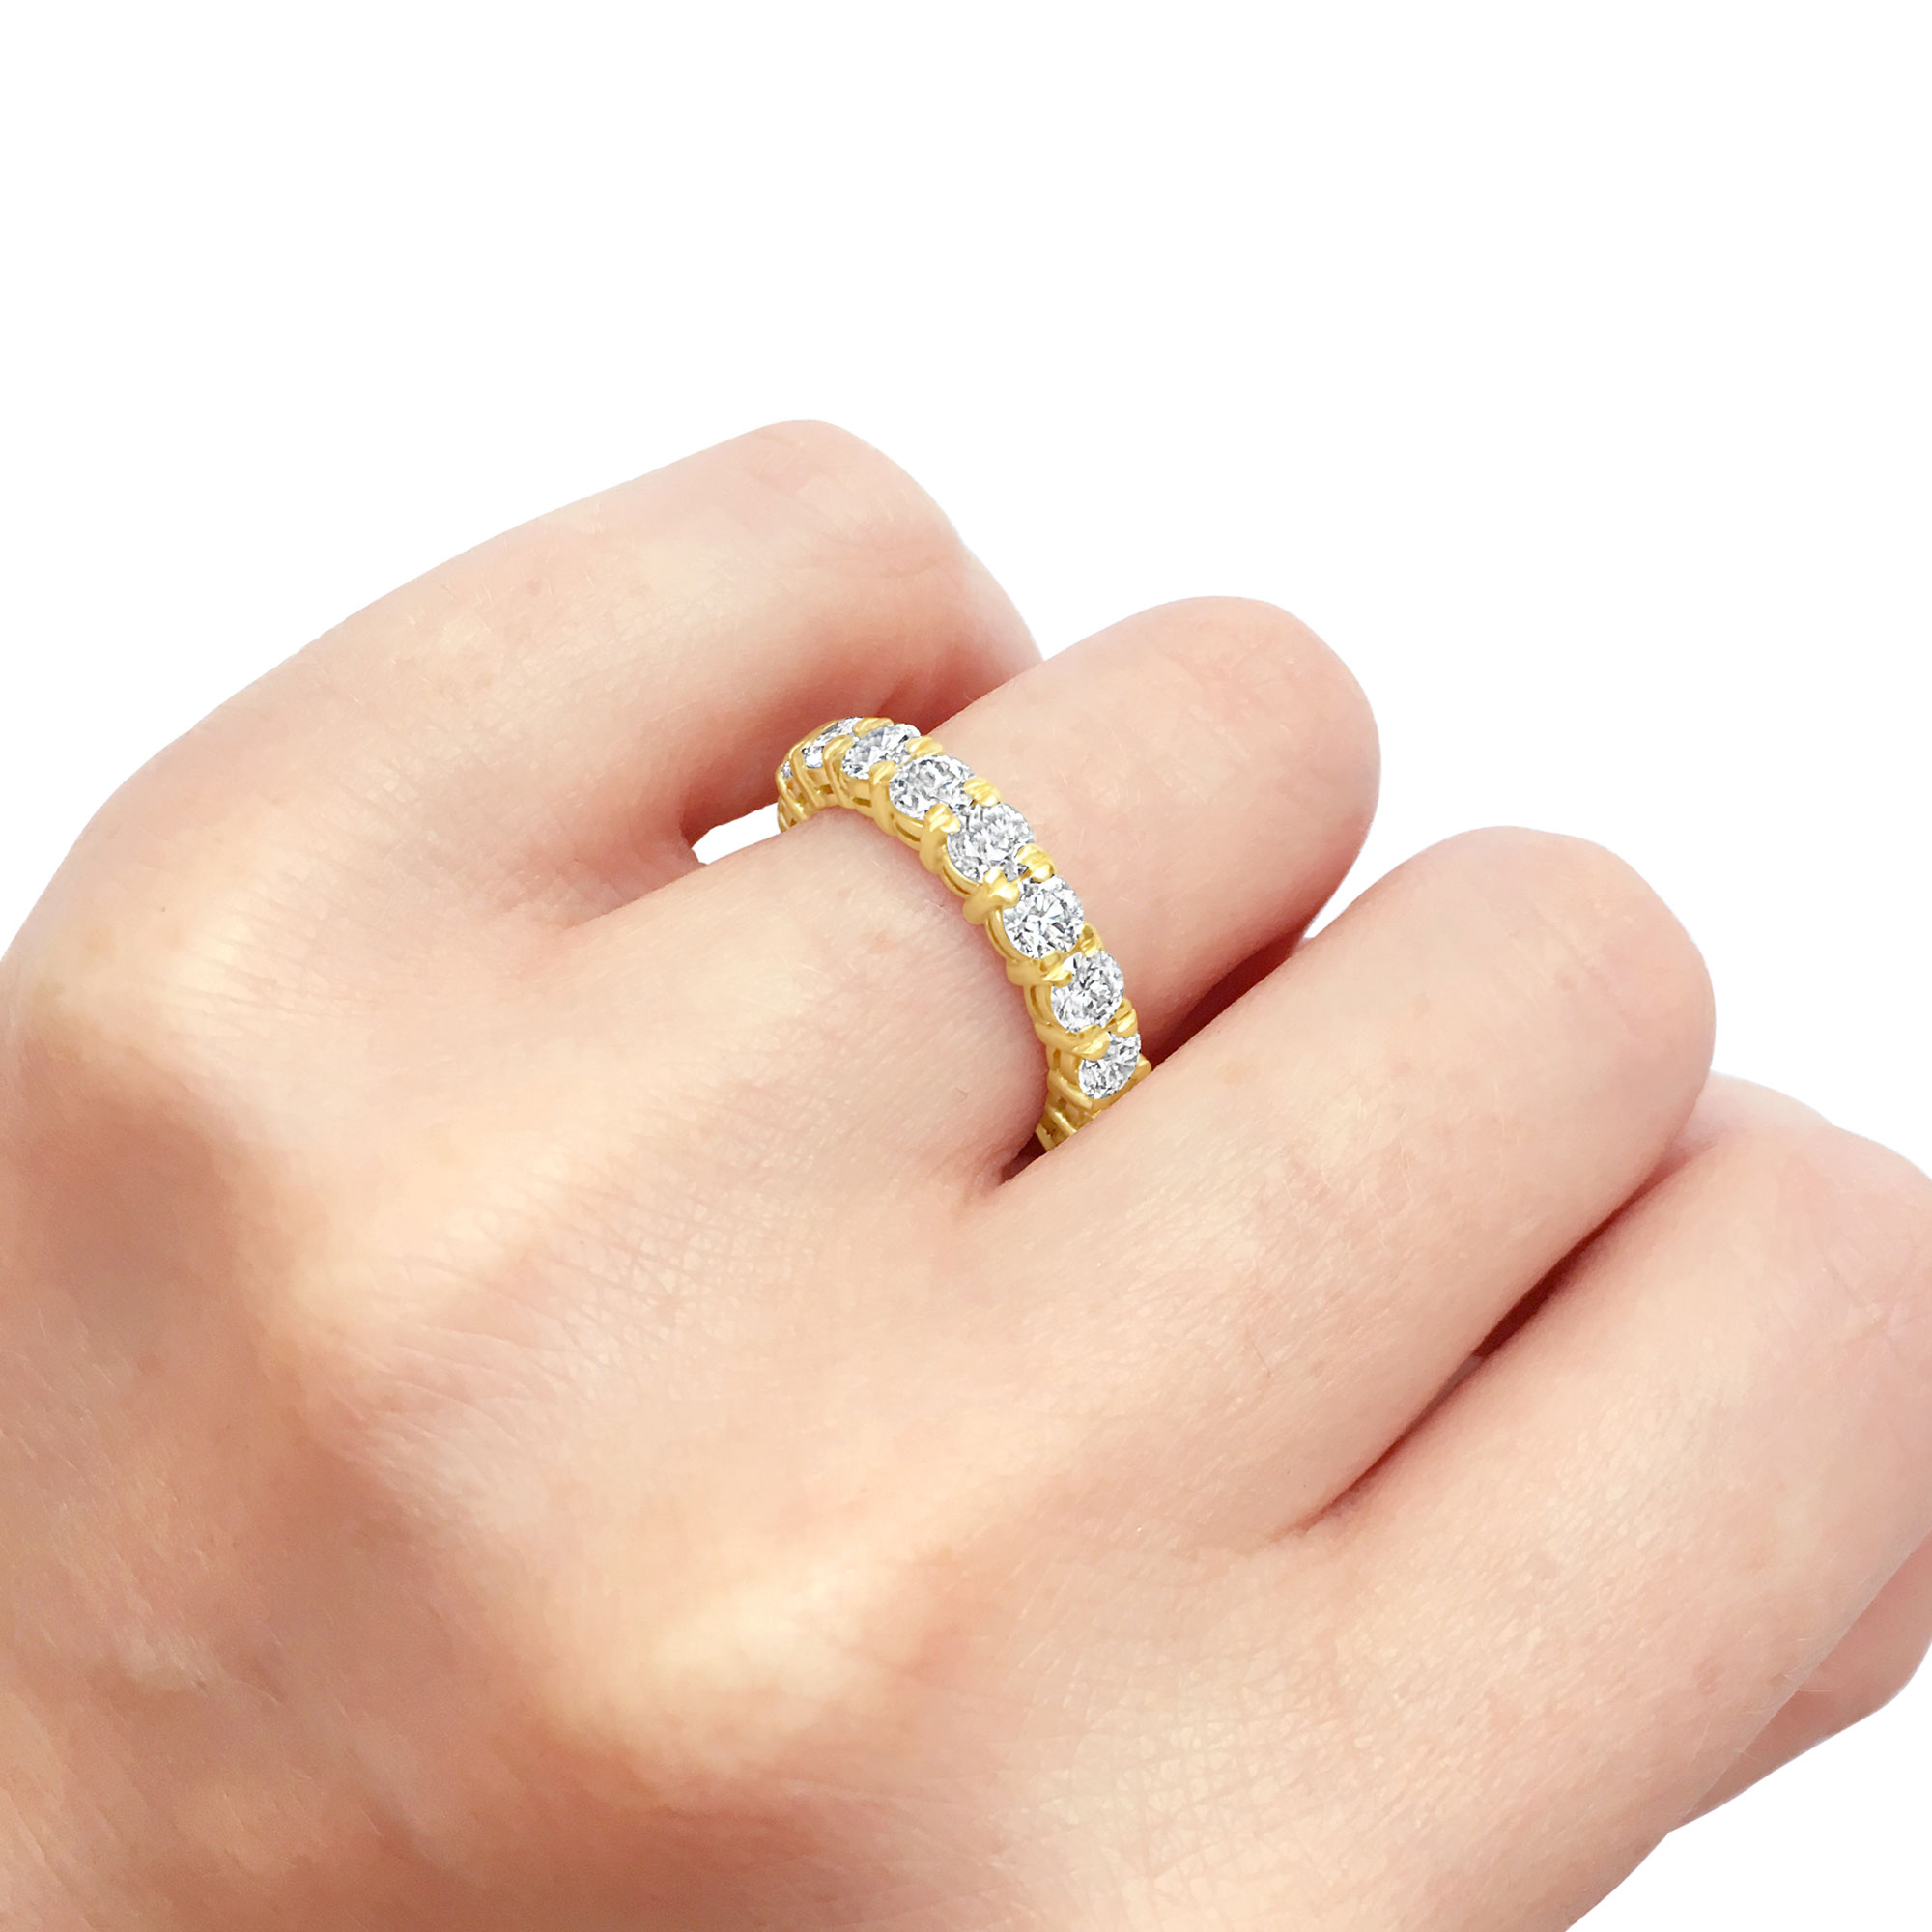 Diamond eternity ring with engagement ring